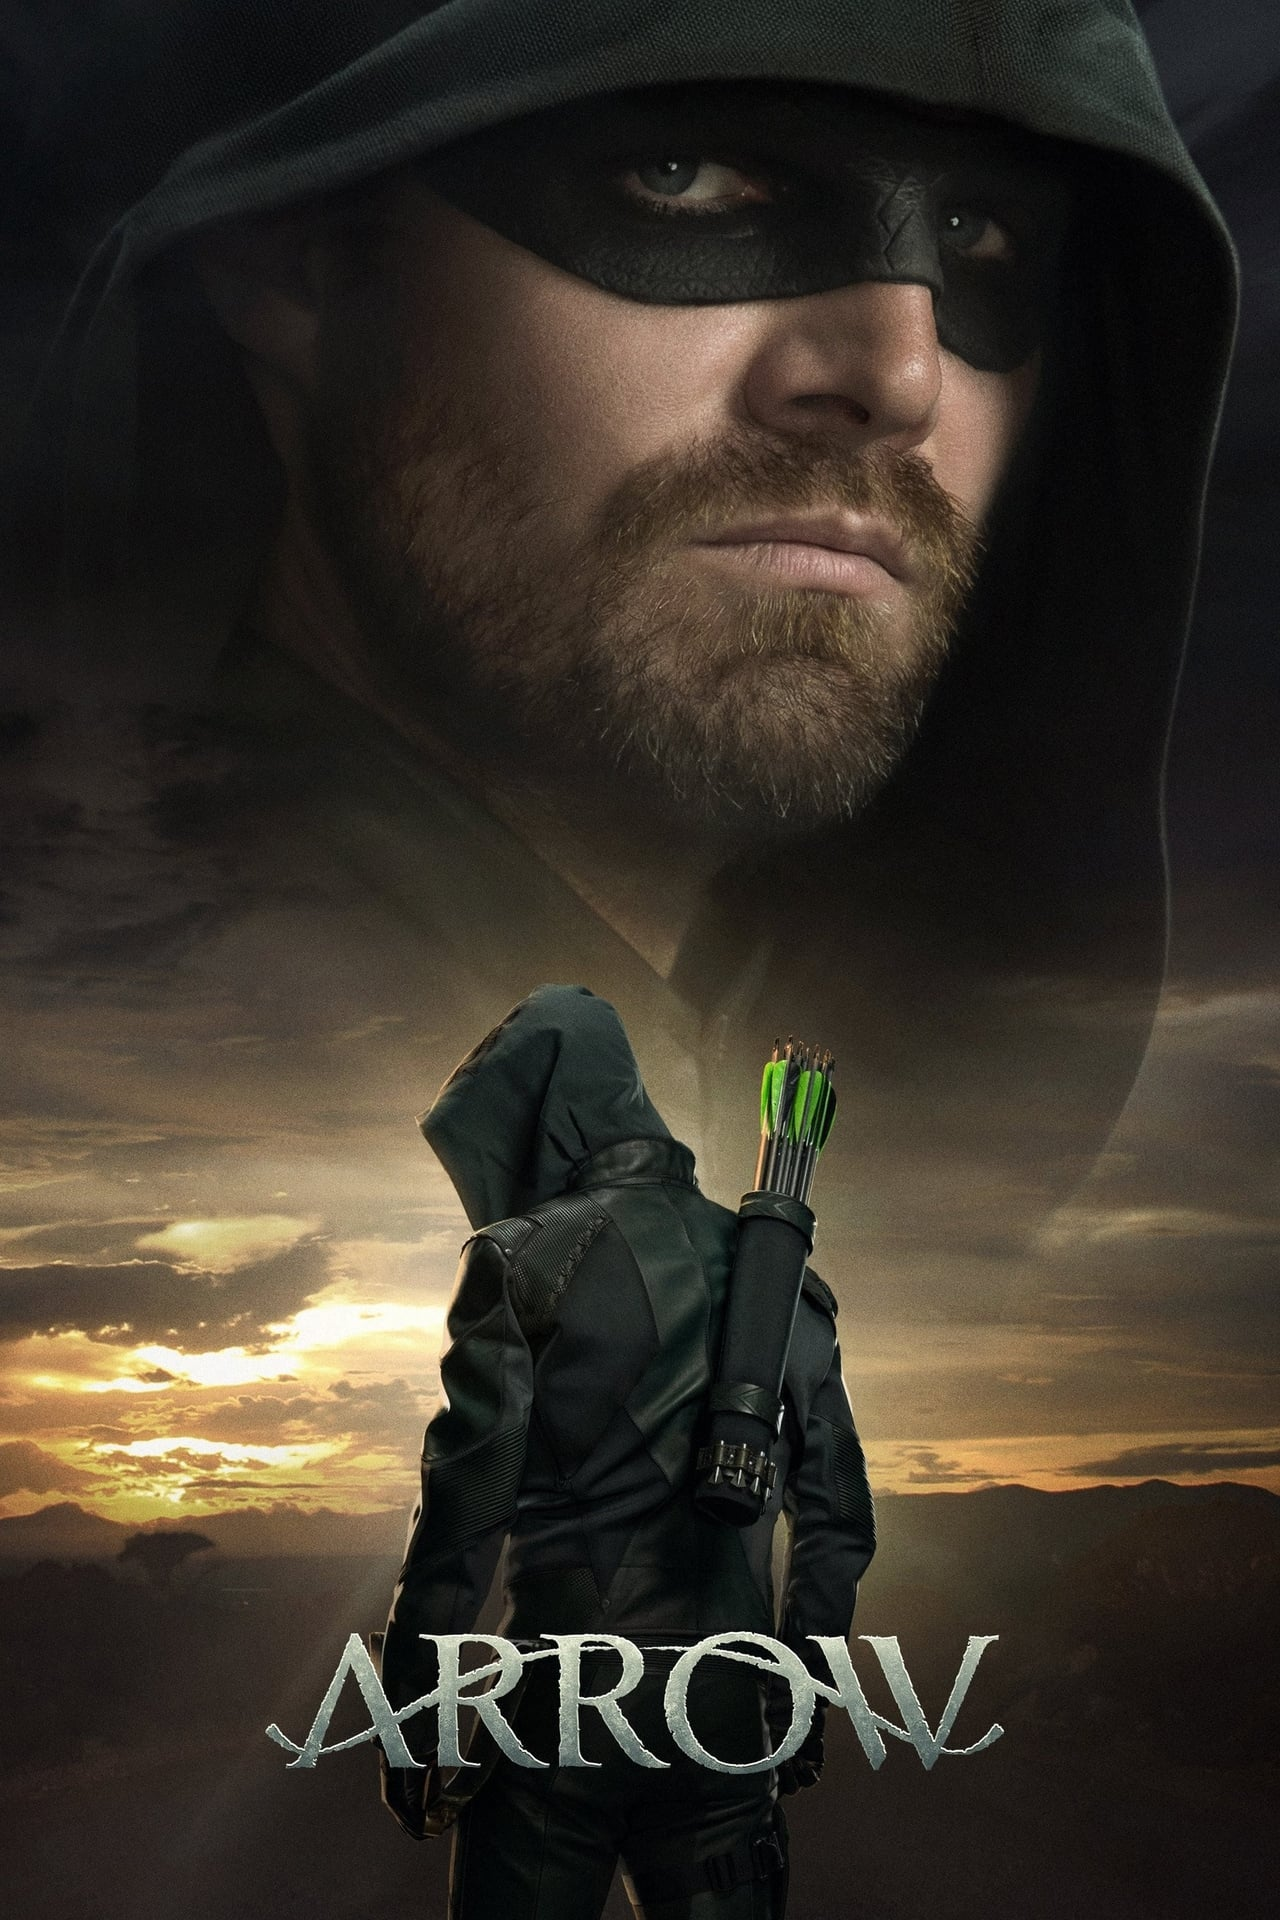 Arrow - Season 5 Episode 14 : El devorador de pecados